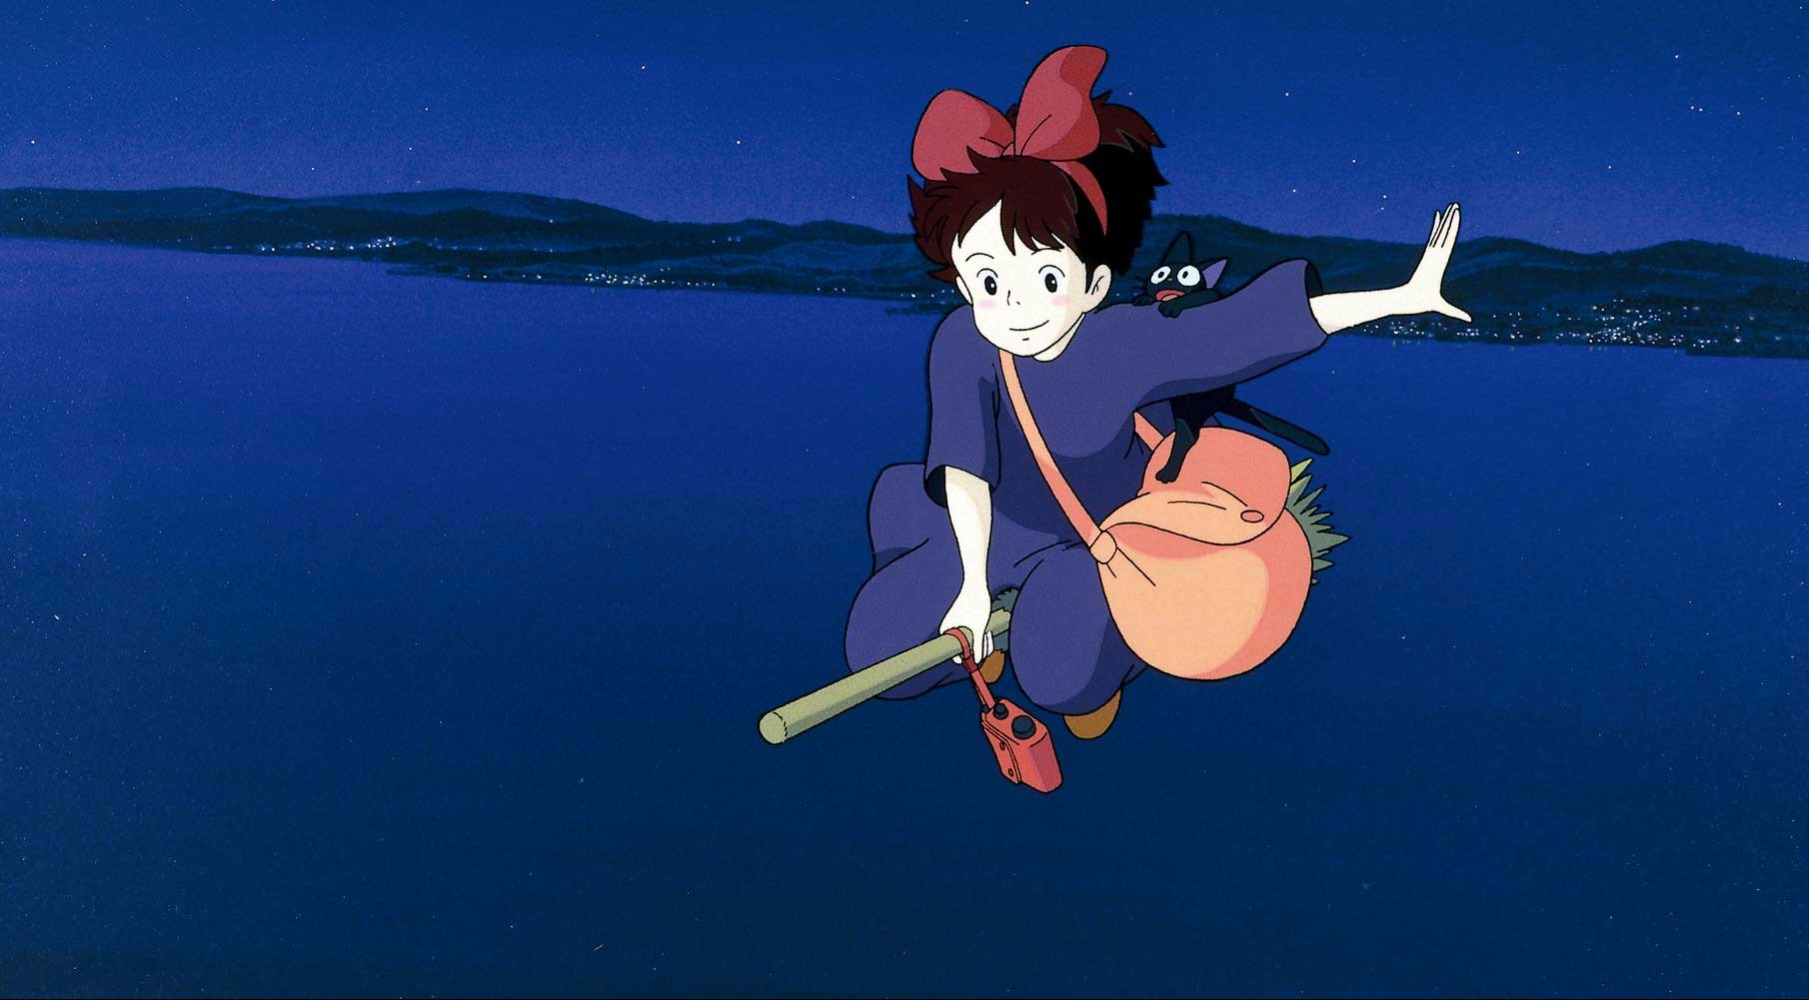 Kiki's Delivery Service Wallpapers High Quality | Download ...